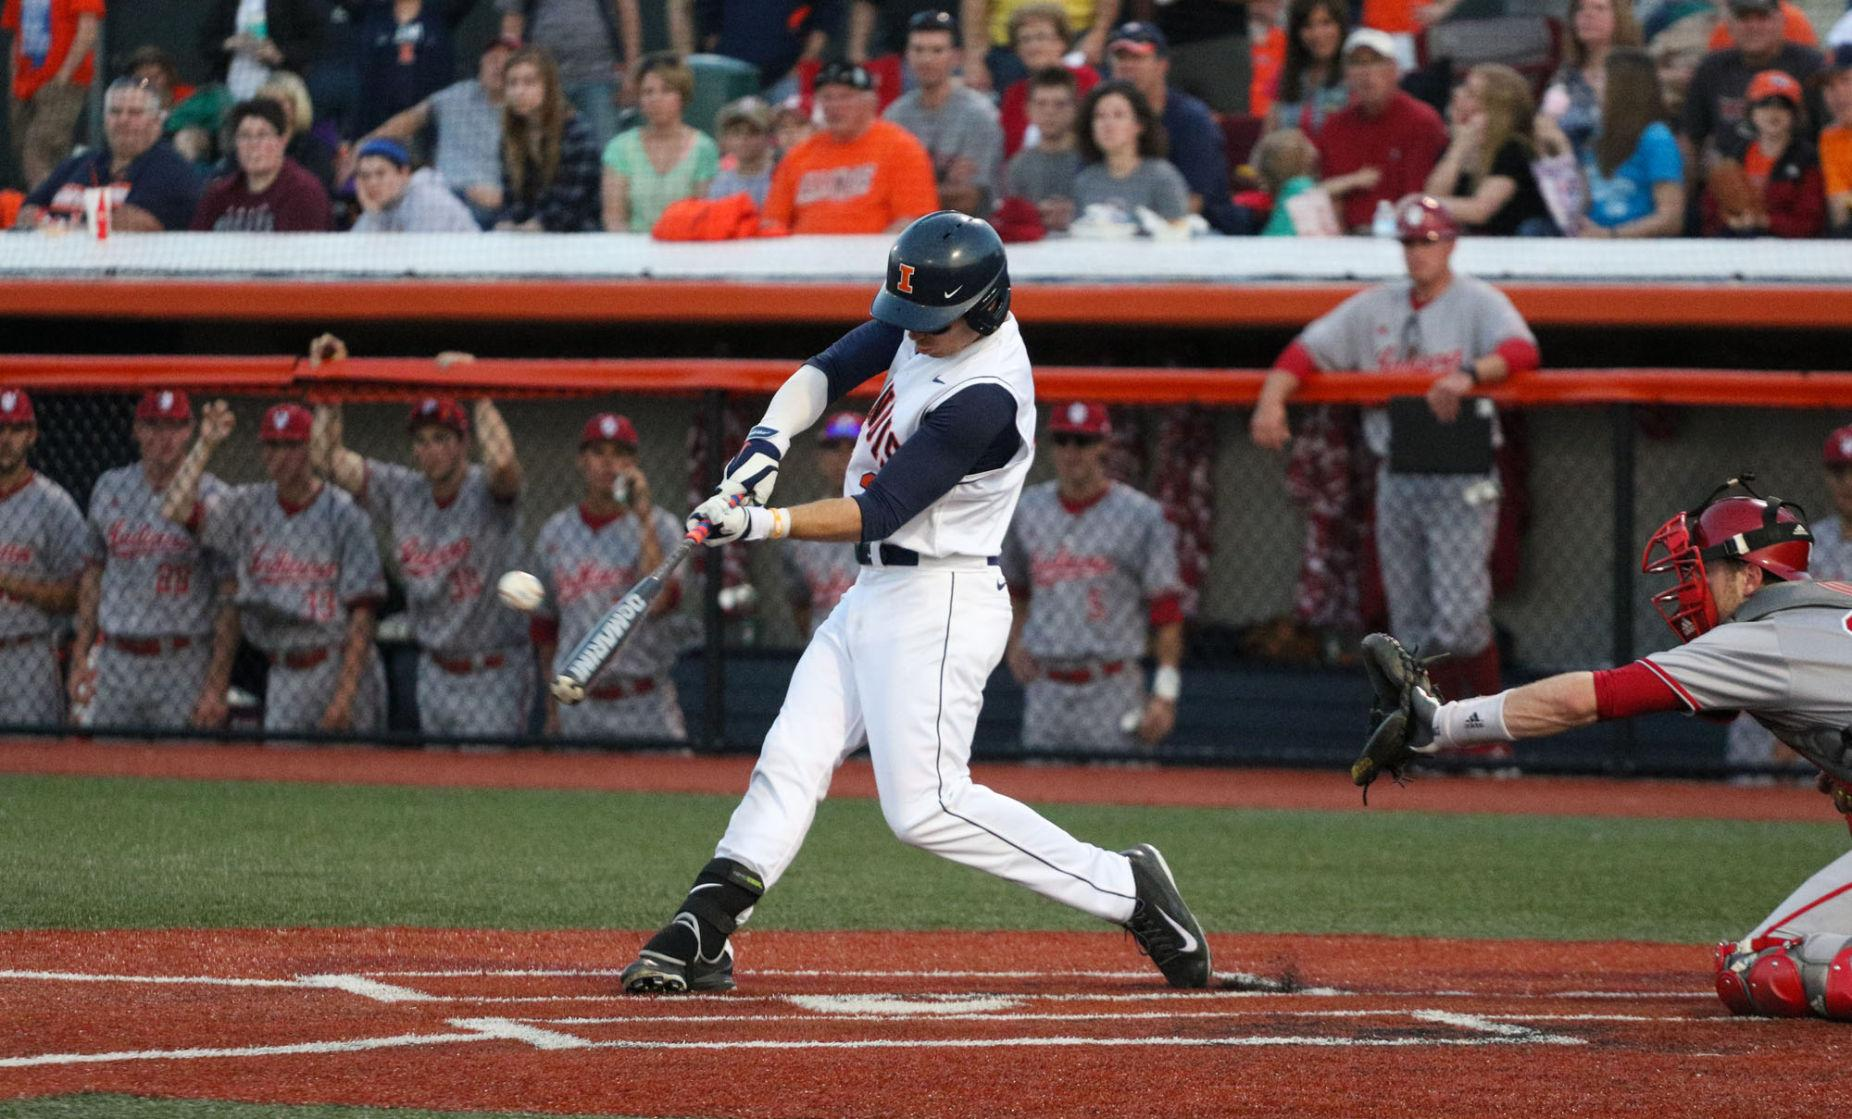 Illinois' Casey Fletcher (3) takes a swing at the ball during the baseball game vs. Indiana at Illinois Field on Friday. Illinois won 5-1.